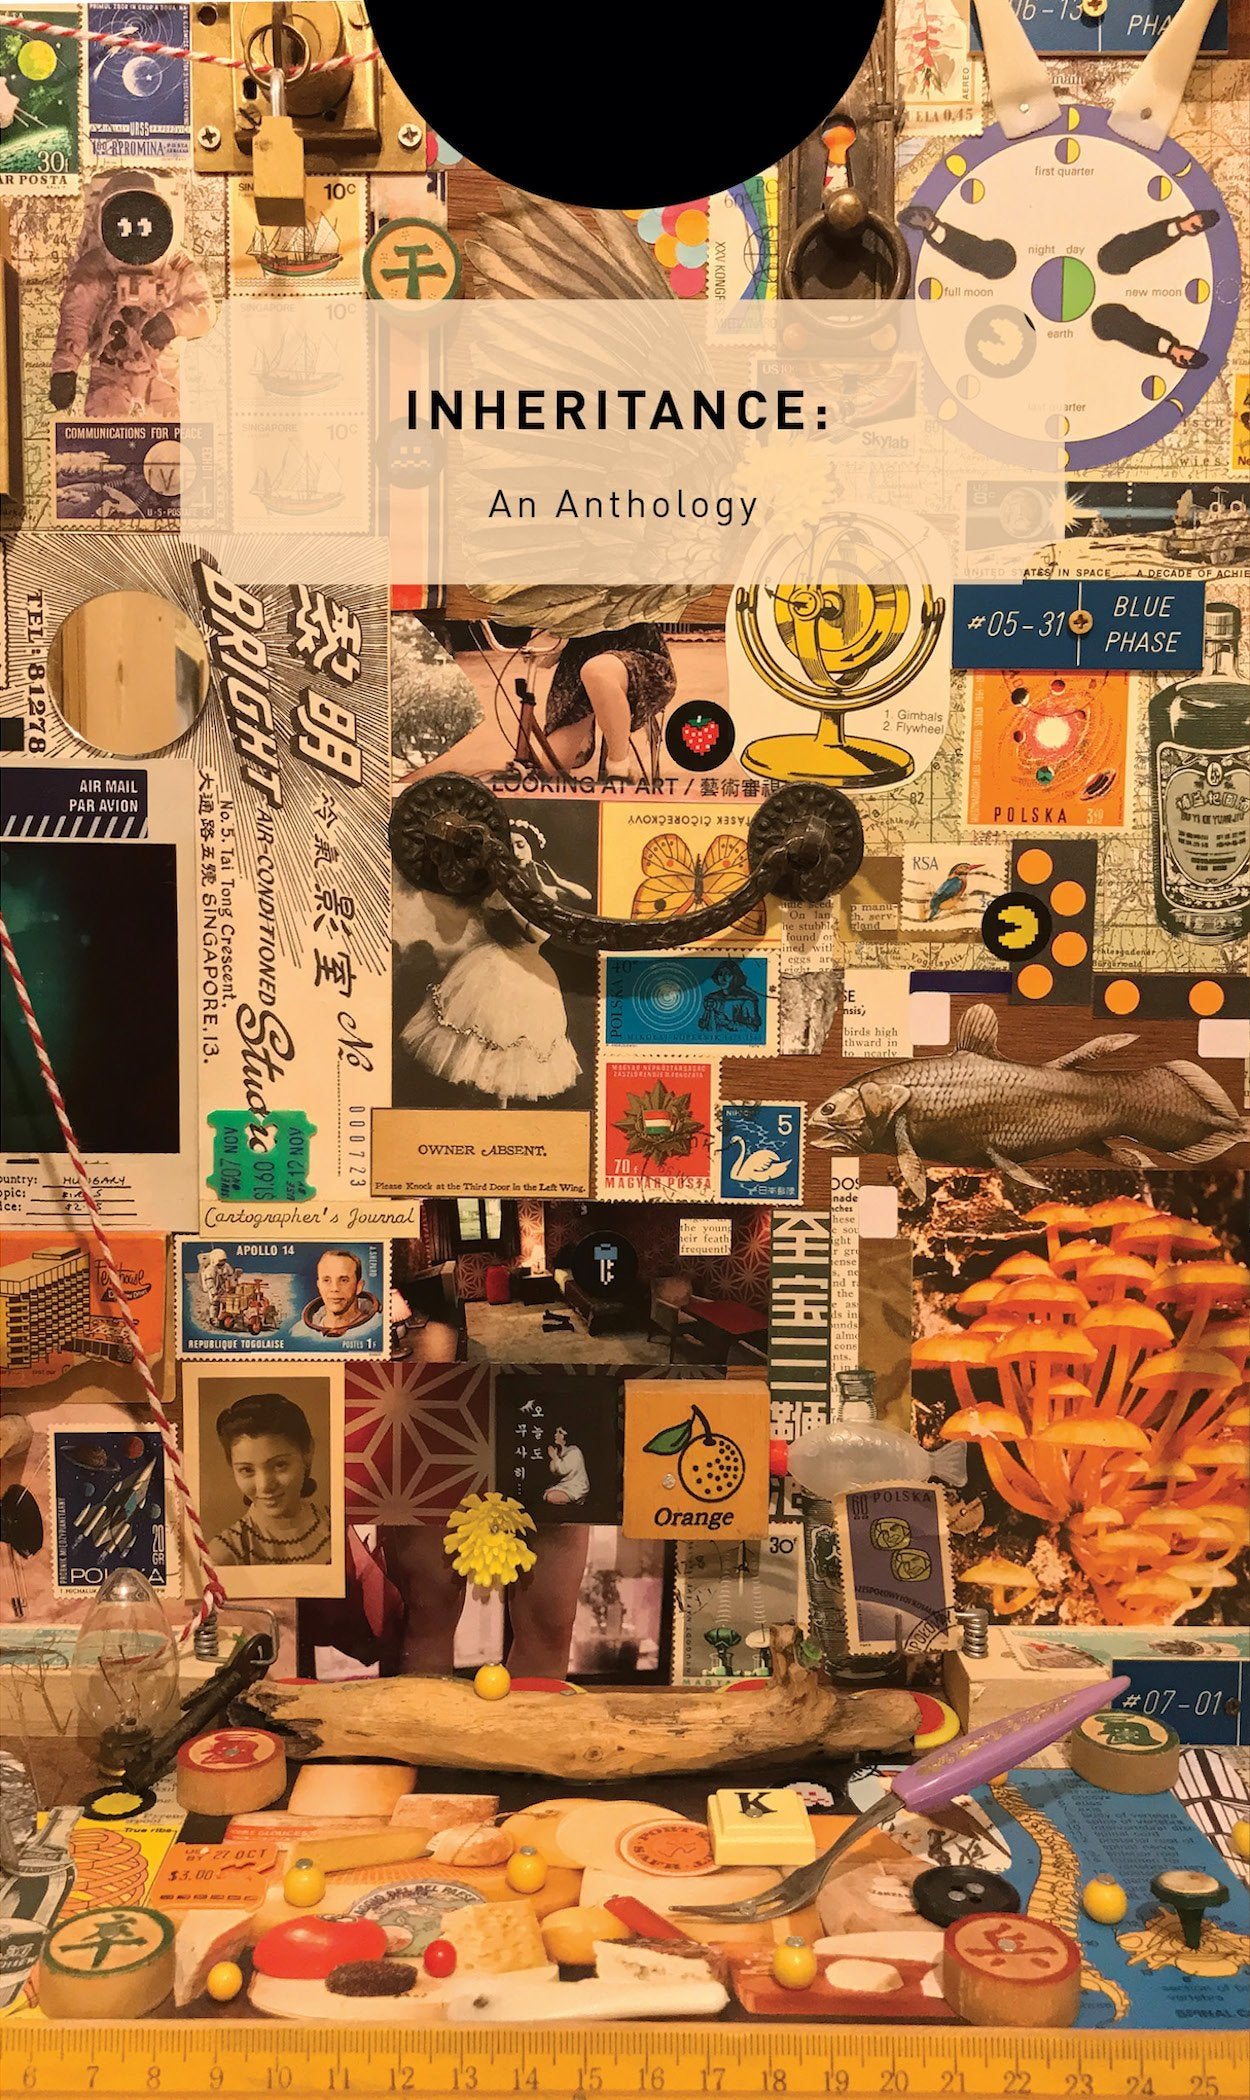 Inheritance: An Anthology